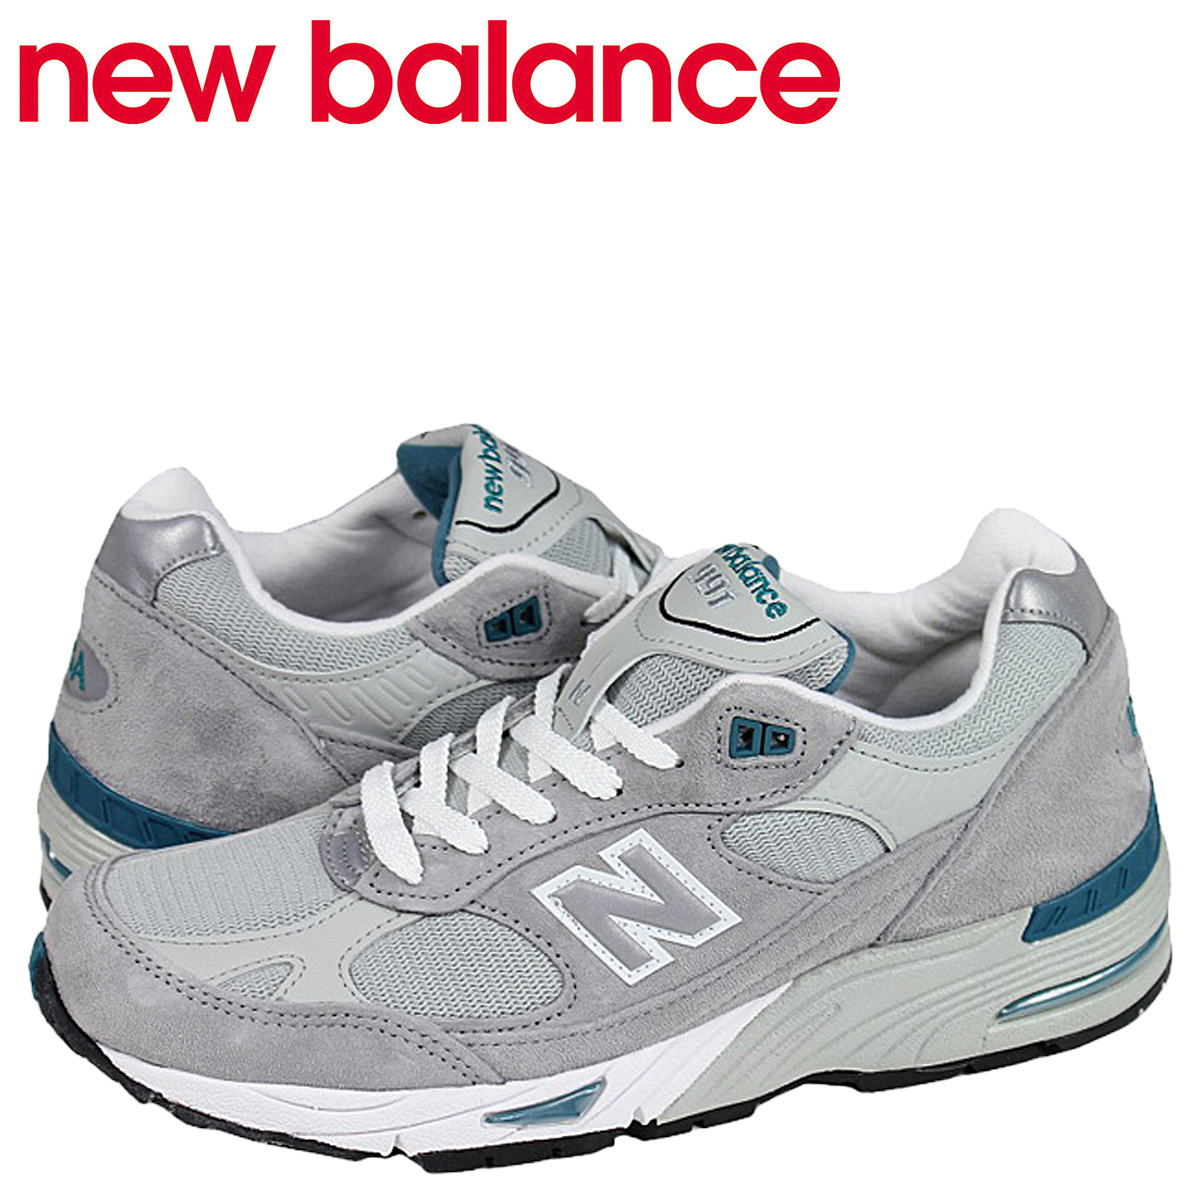 New Balance new balance M991GT Made in USA sneakers gray D Wise suede cloth  mesh suede men